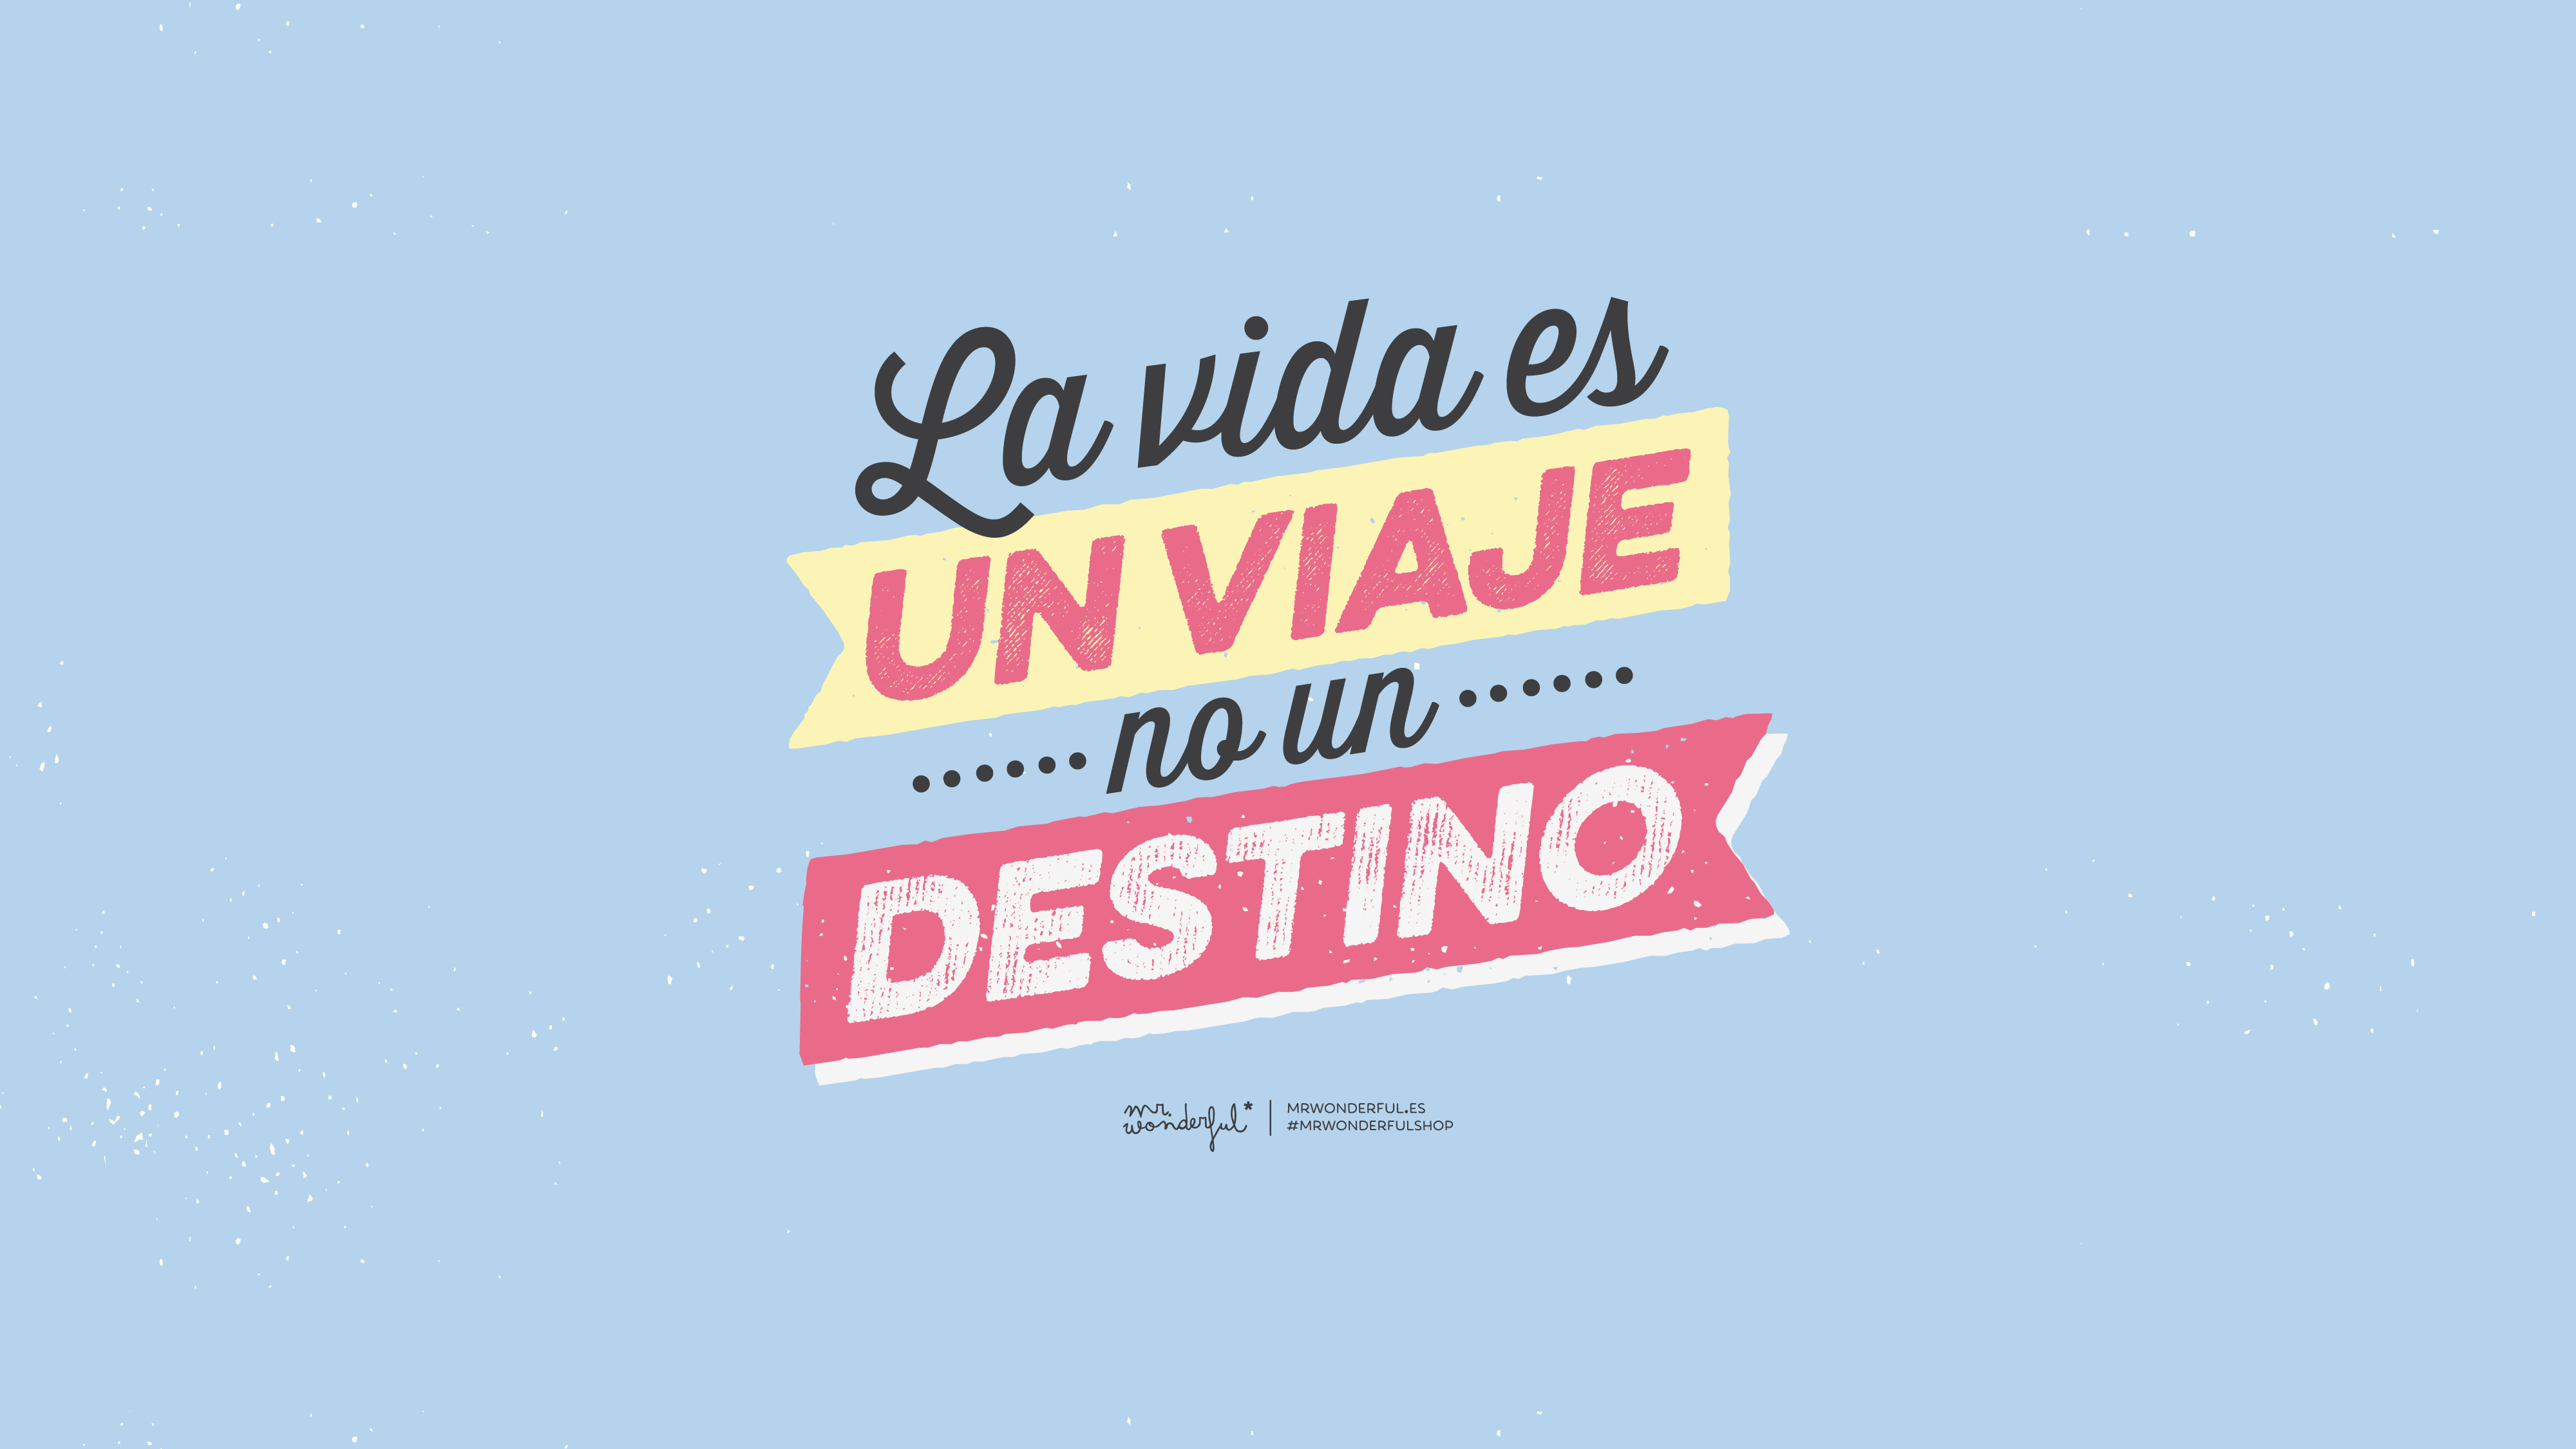 MrWonderful_desktop_decargable_gratis_destino